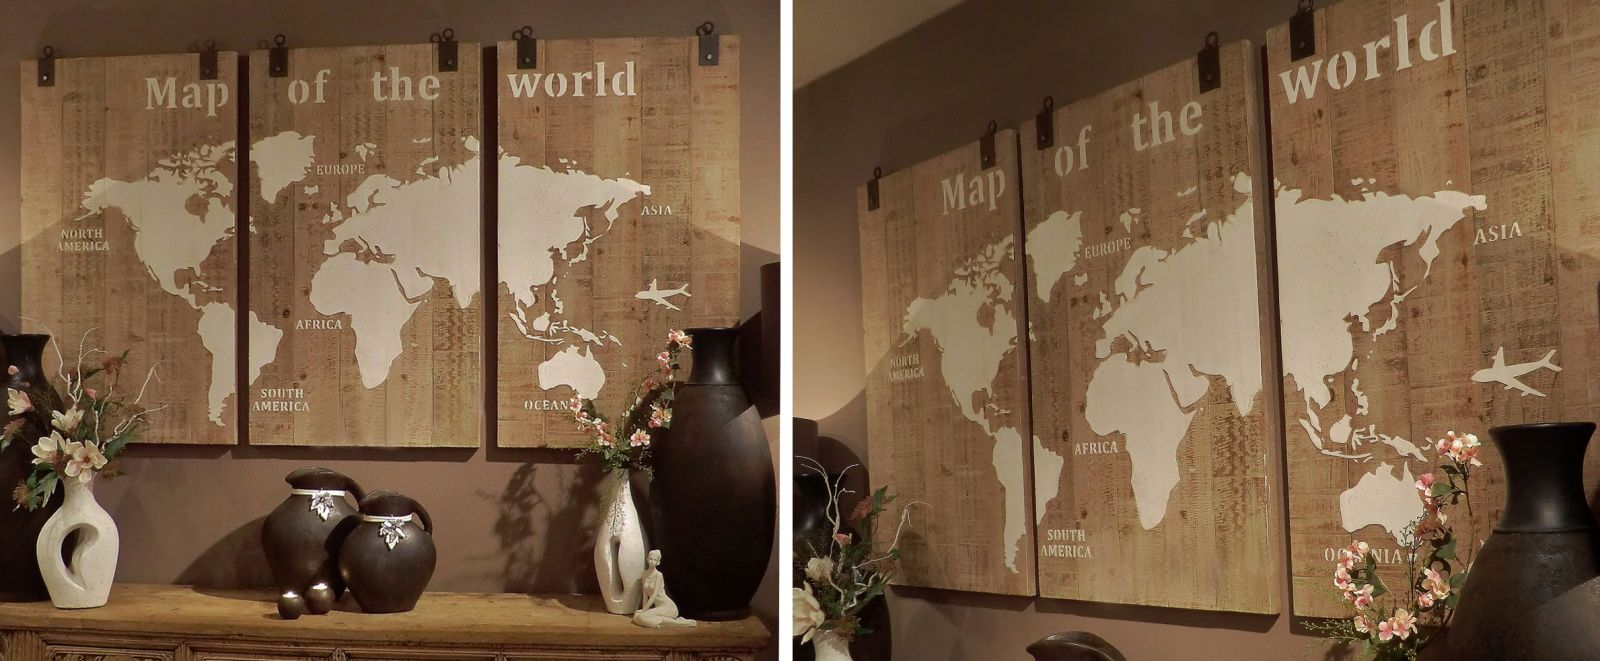 Muurdeco Map of the World 3-Luik - Sfeer Binnen - Sfeer en Interieur ...